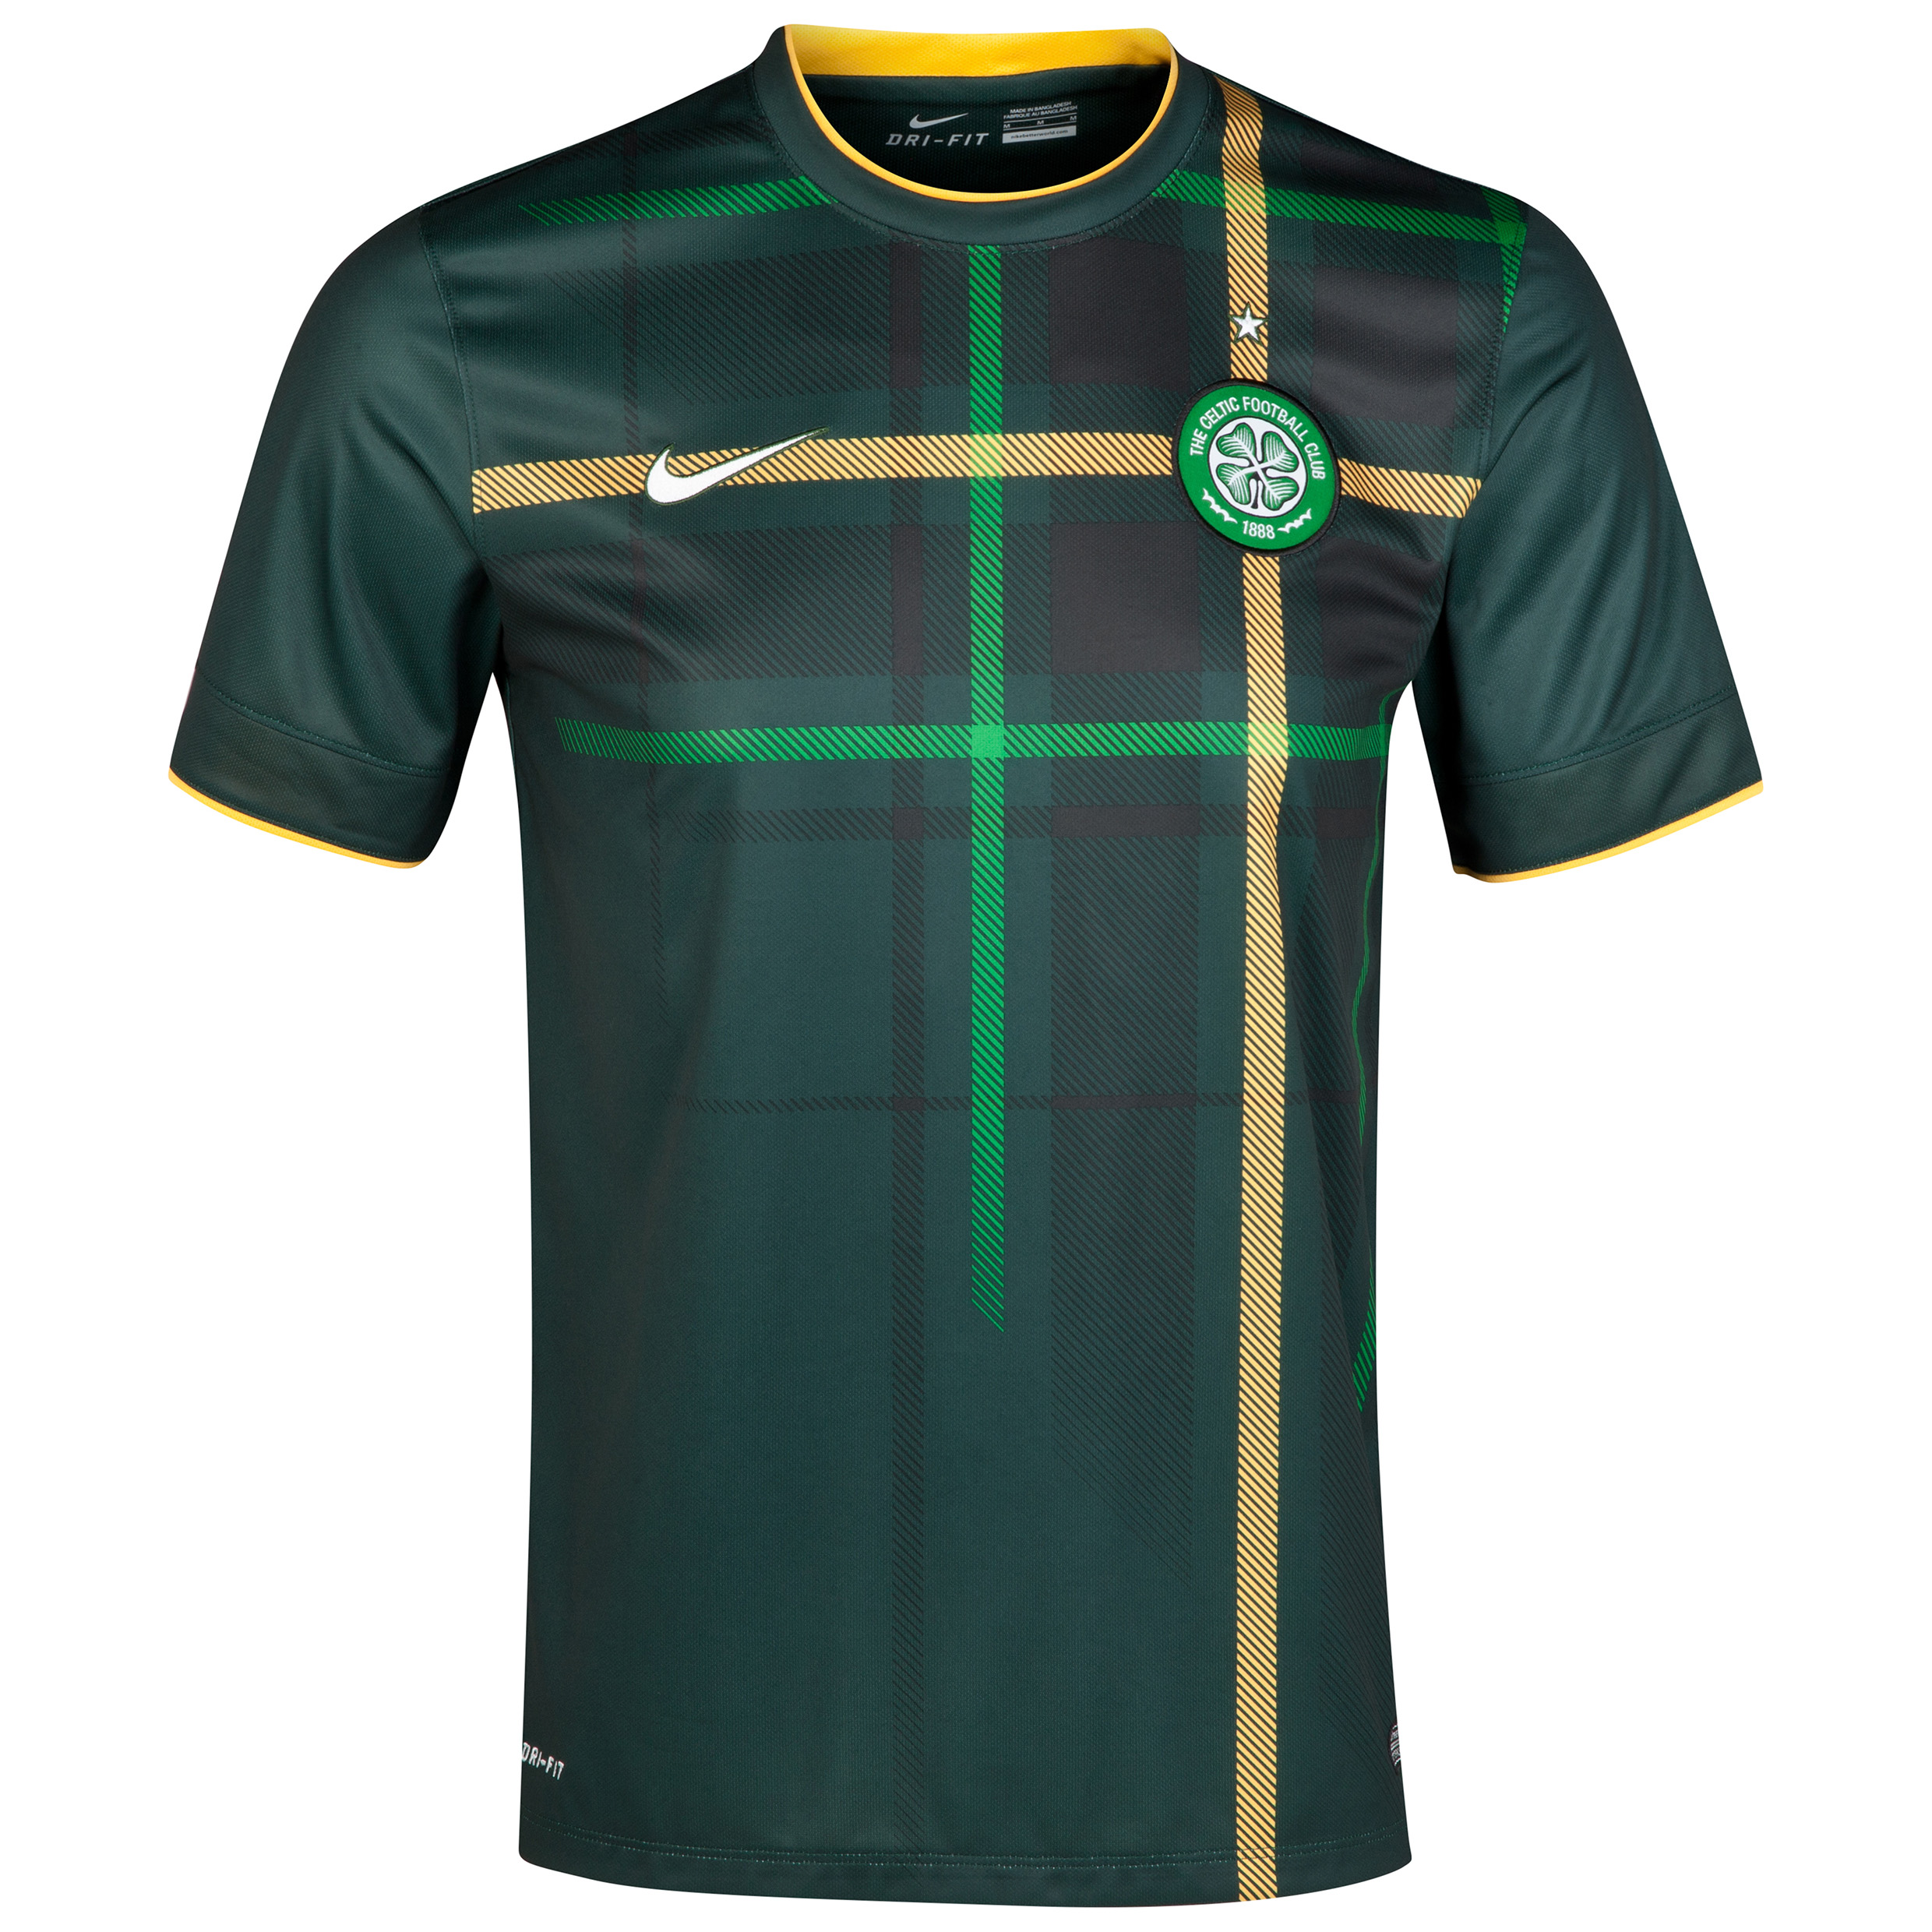 Celtic Away Shirt 2014/15 - Unsponsored Green